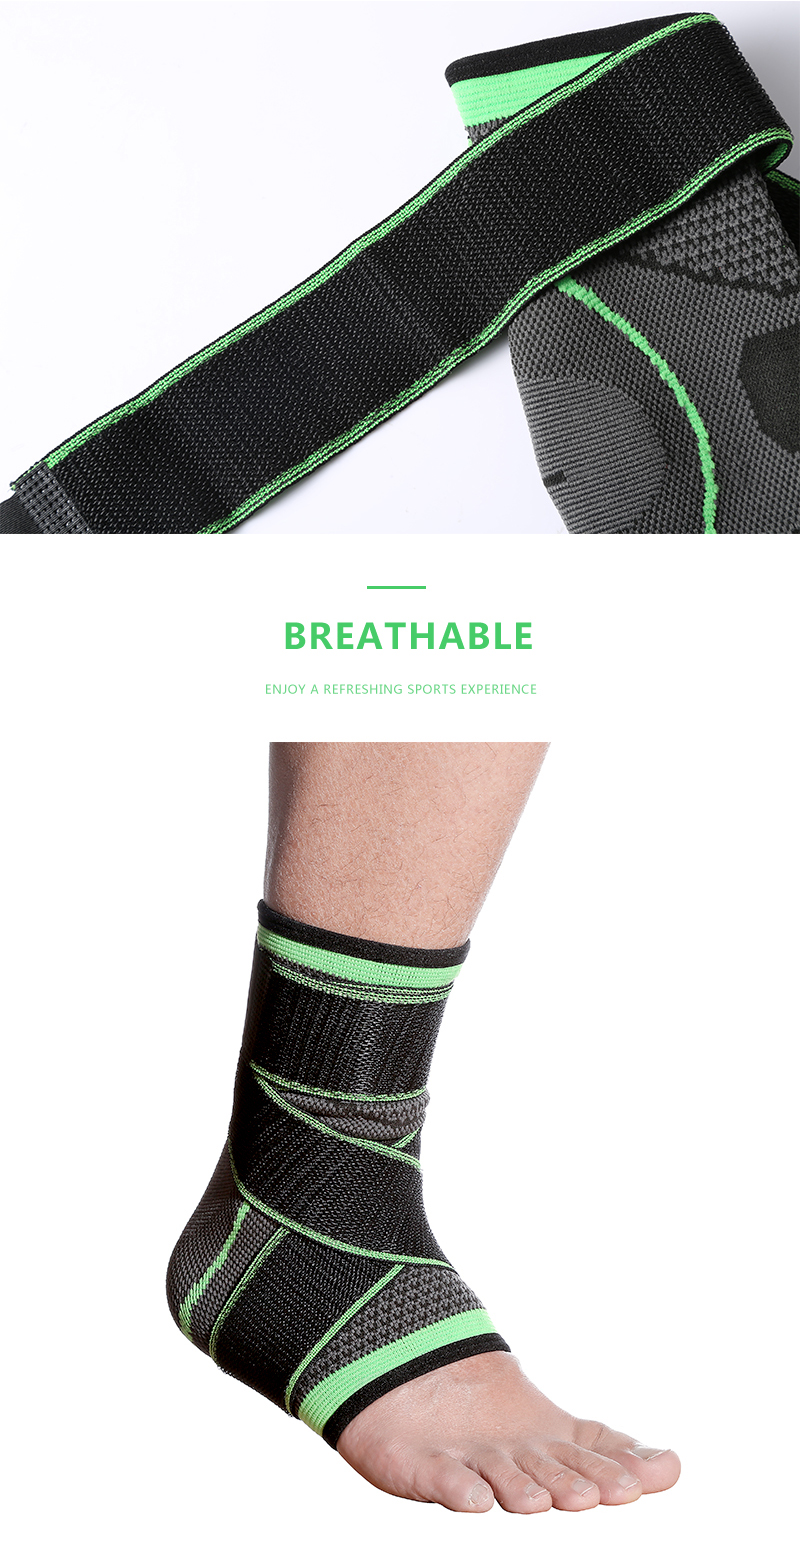 Hot Sale Men Women Nylon Ankle Support Running Breathable Bandage Ankle Brace Compression Adjustable Ankle Support Guard